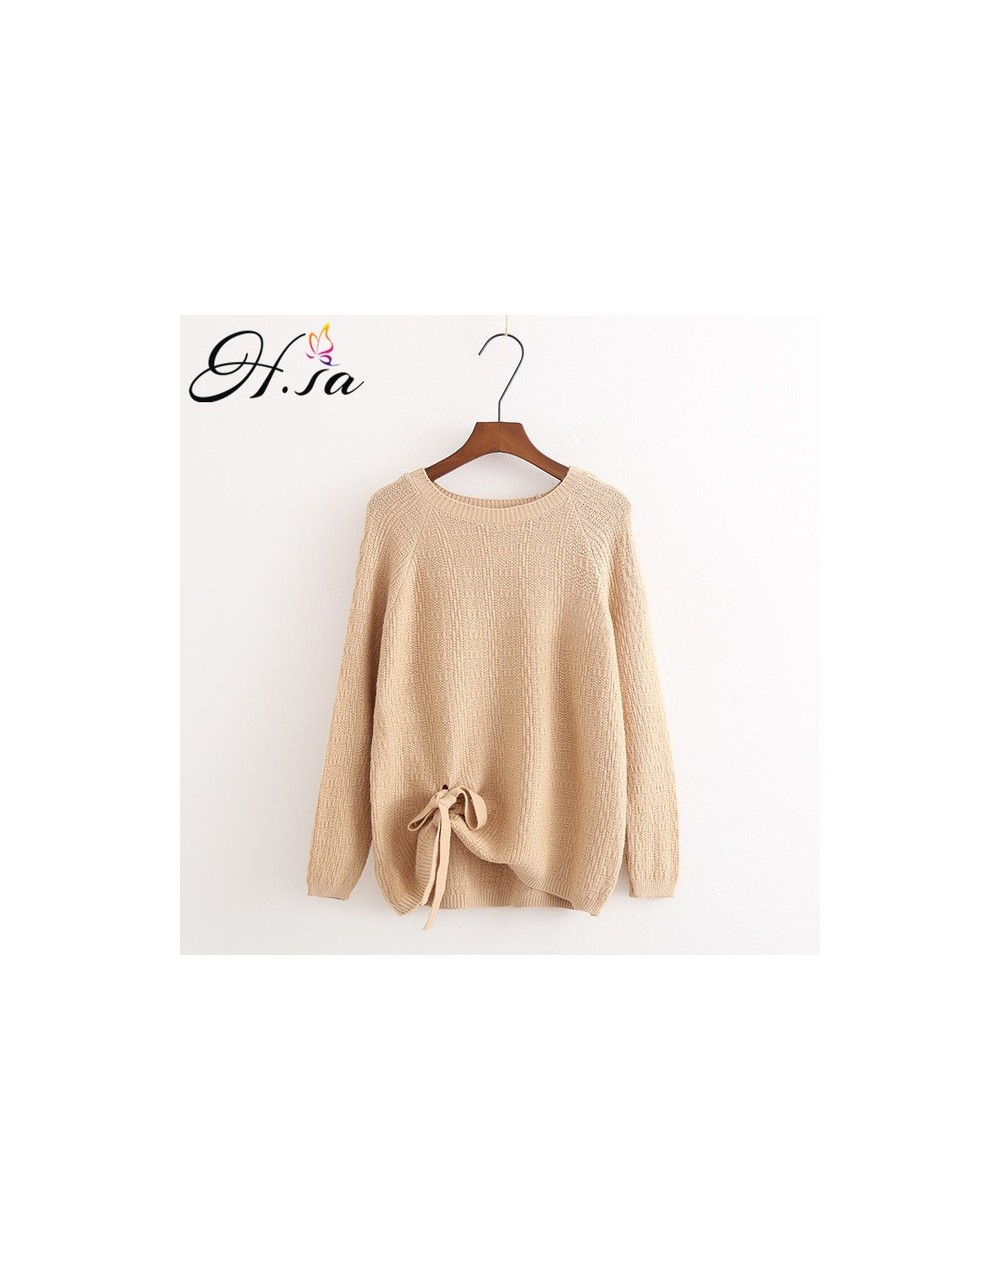 European Style Women Pullover and Sweaters 2018 Bandage Sweater Jumpers Backless Knitwear Twisted Sweater sueter mujer - MZ0...